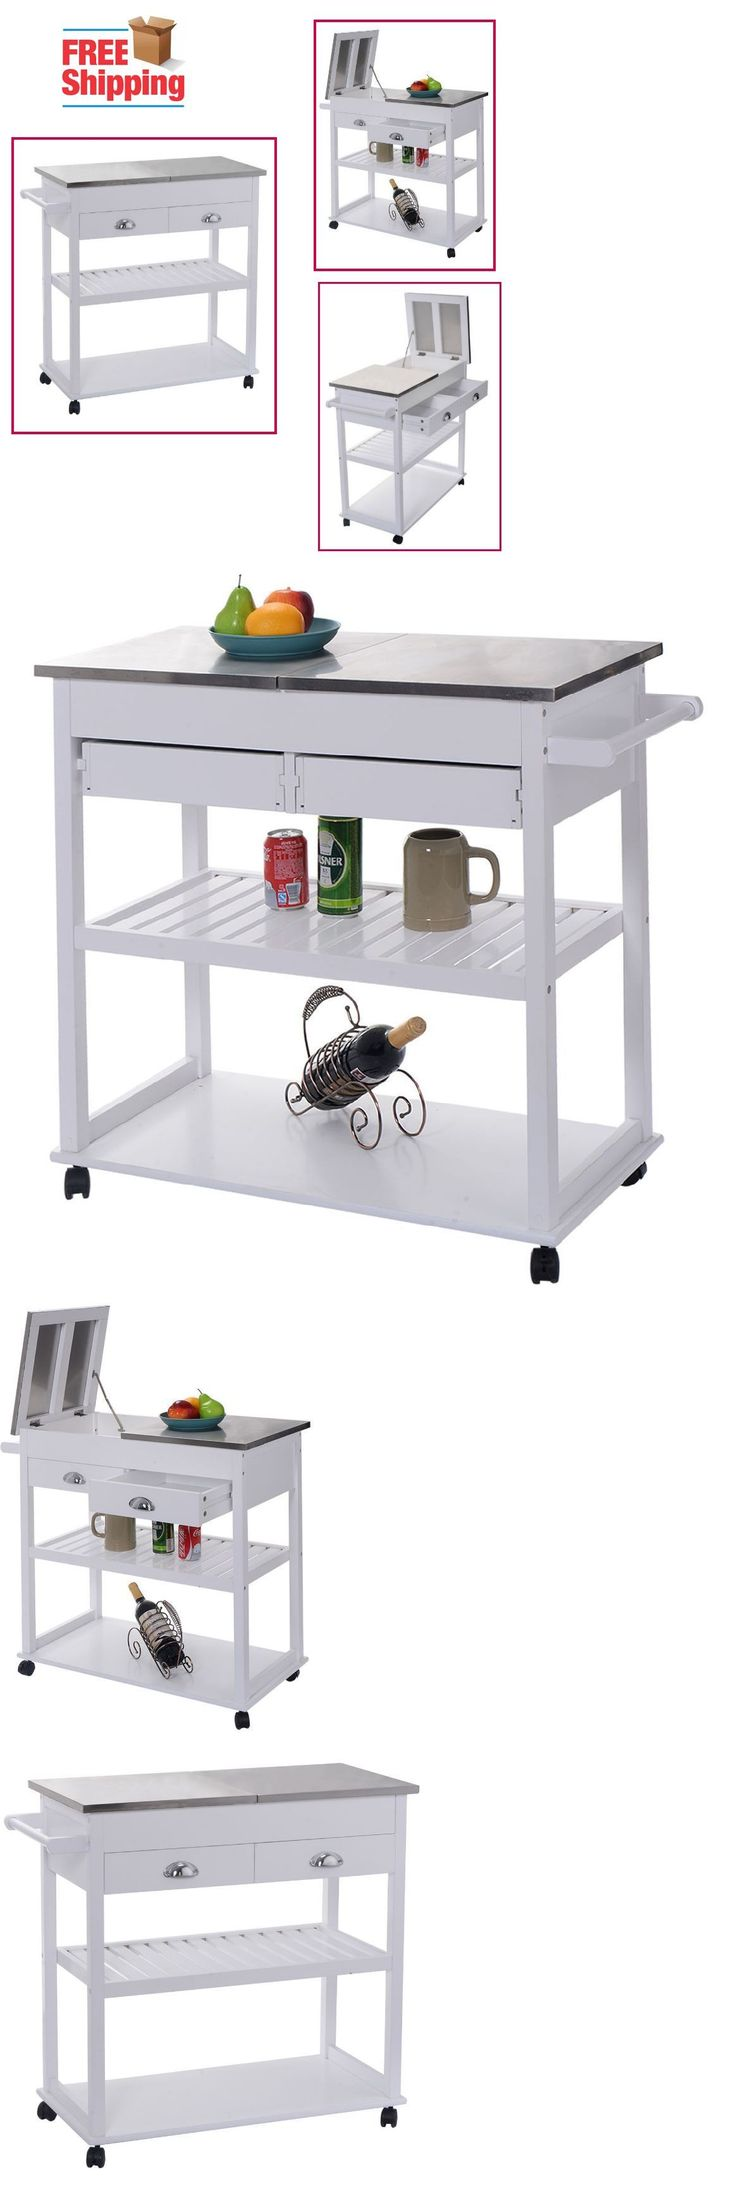 Bakers racks 20482 kitchen island trolley cart removable stainless steel top serving rolling white